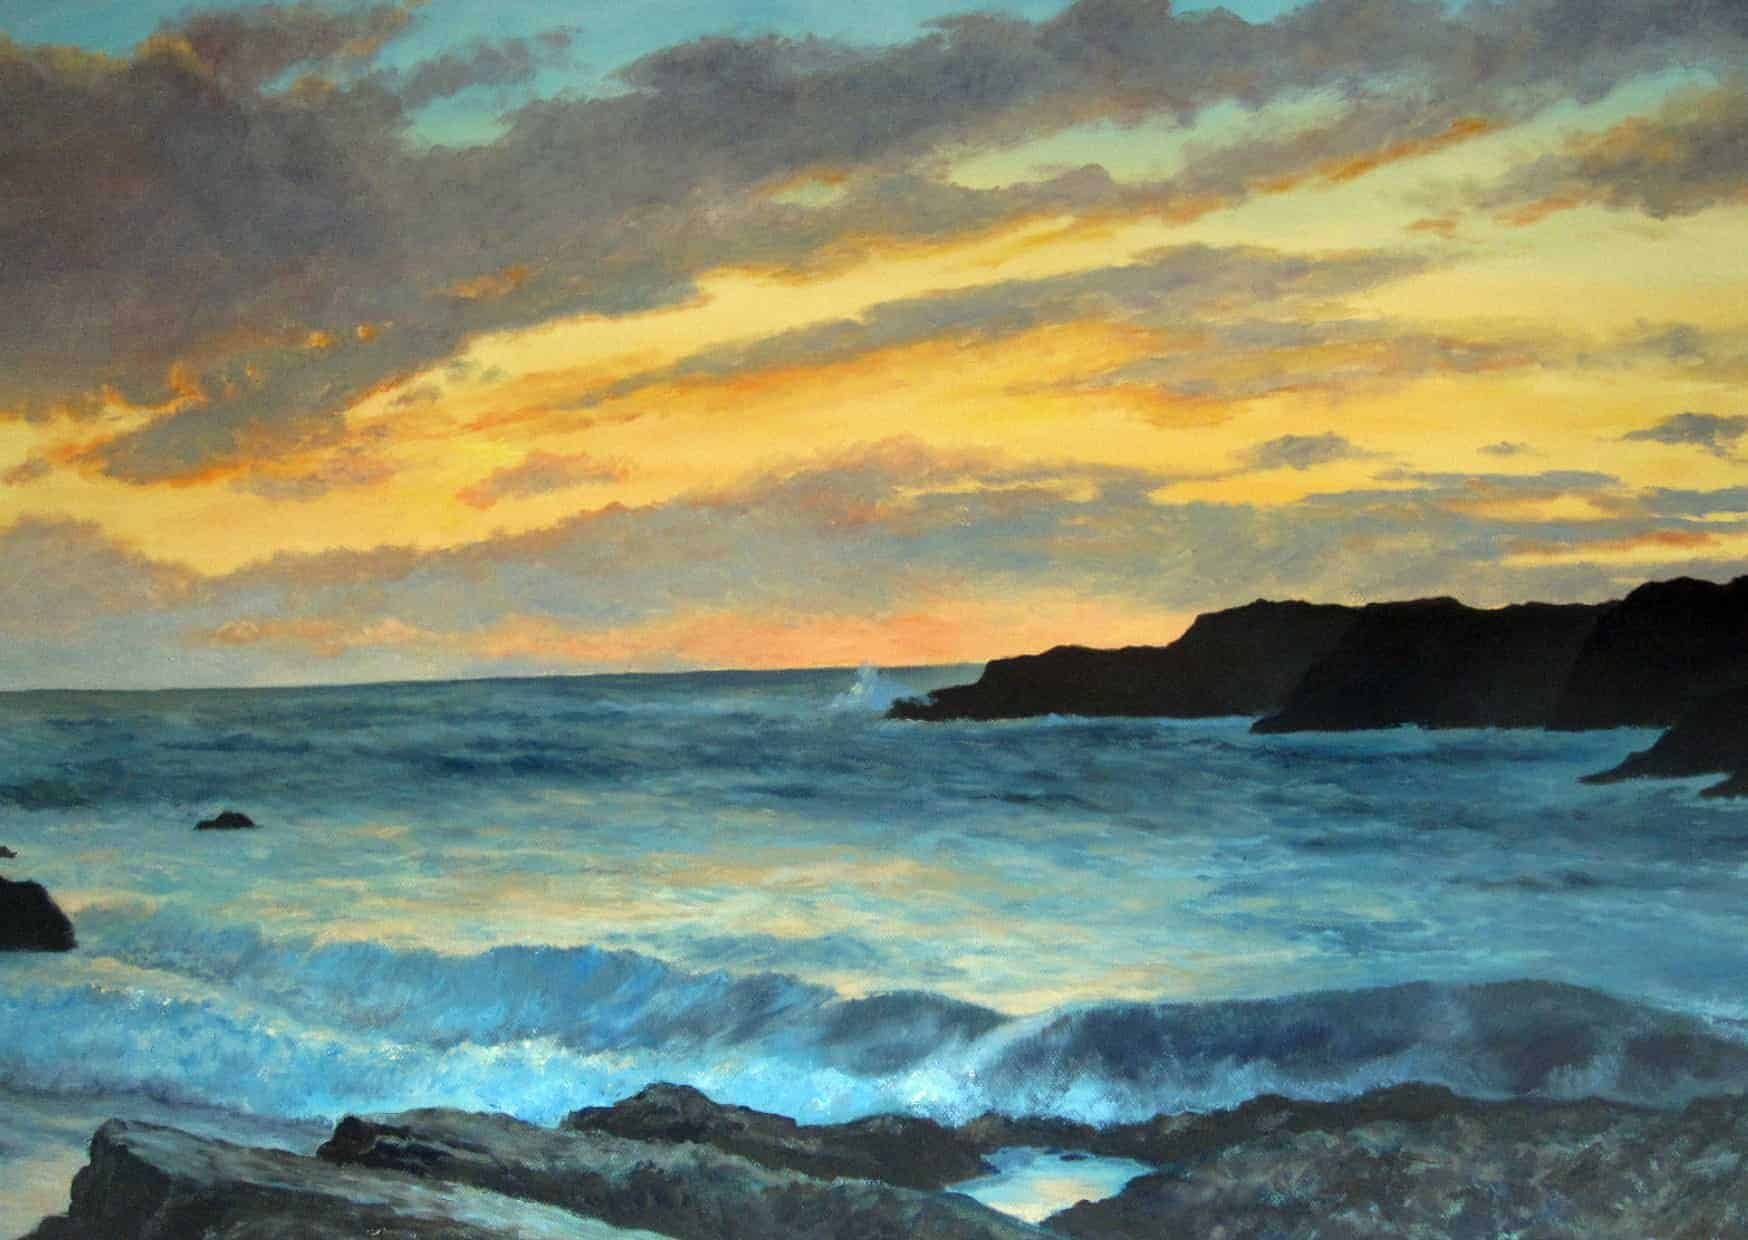 Rocky Coast, Sunset Image